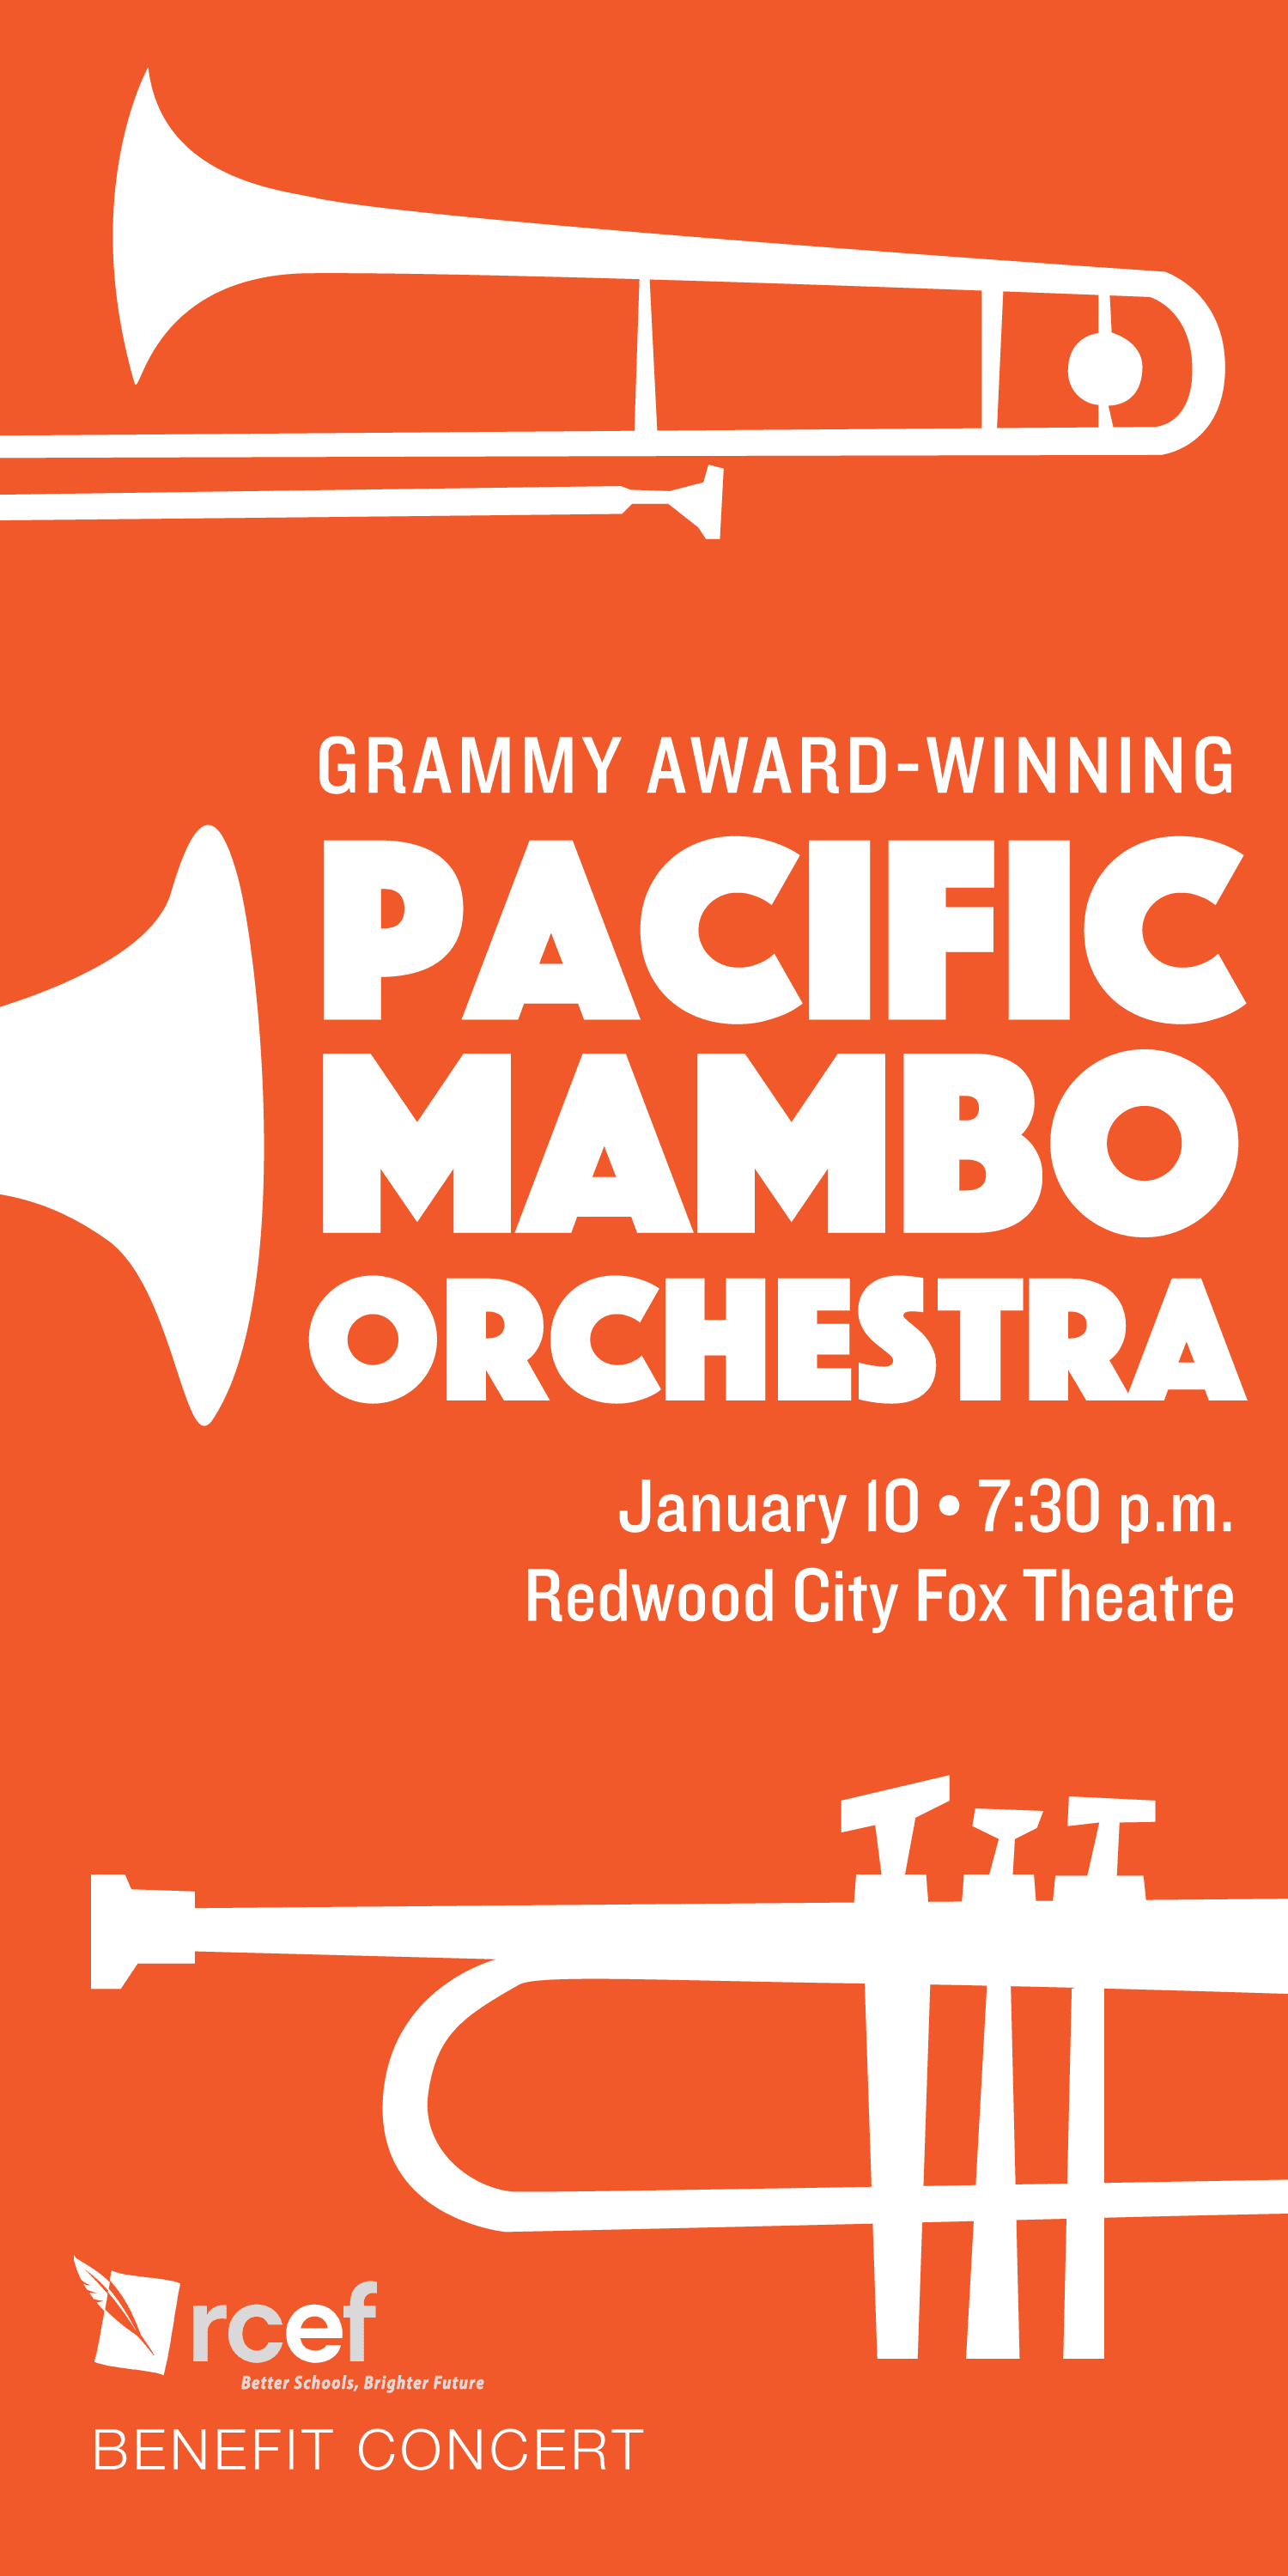 Pacific Mambo Orchestra Poster